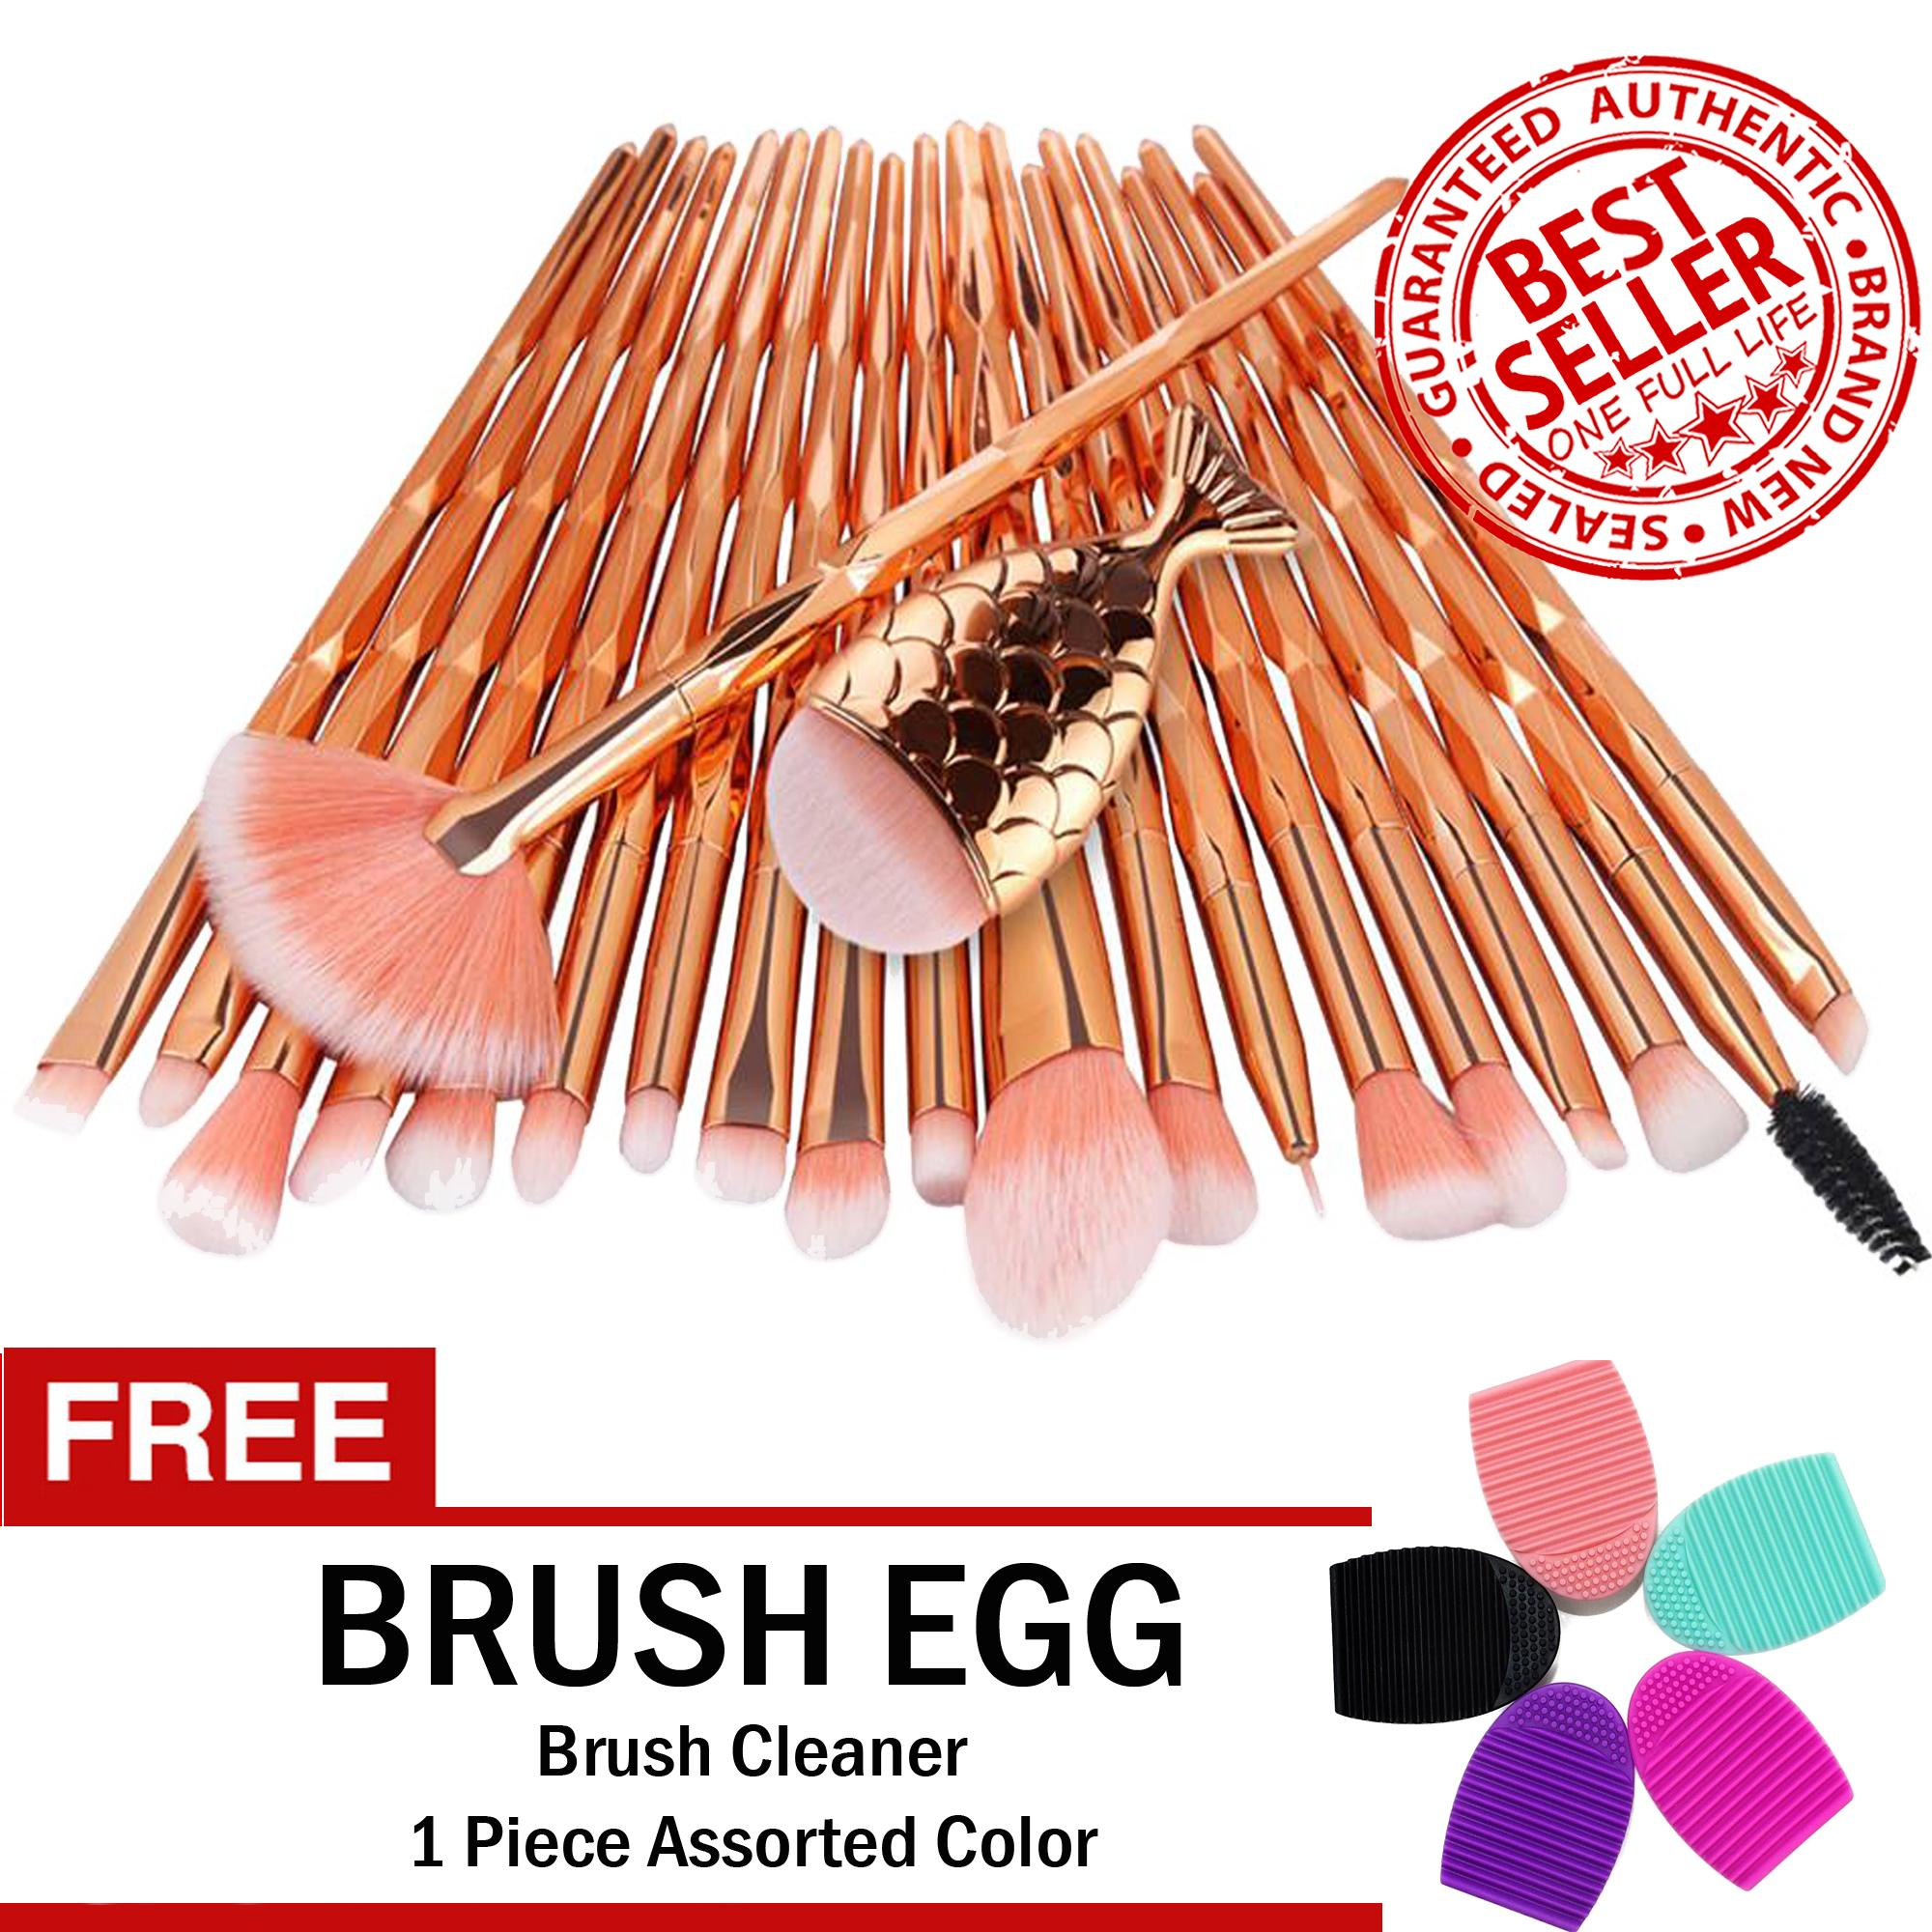 Unicorn Makeup Brush Set 21-Piece ROSE GOLD with with FREE Brush Egg Brush Cleaner Philippines